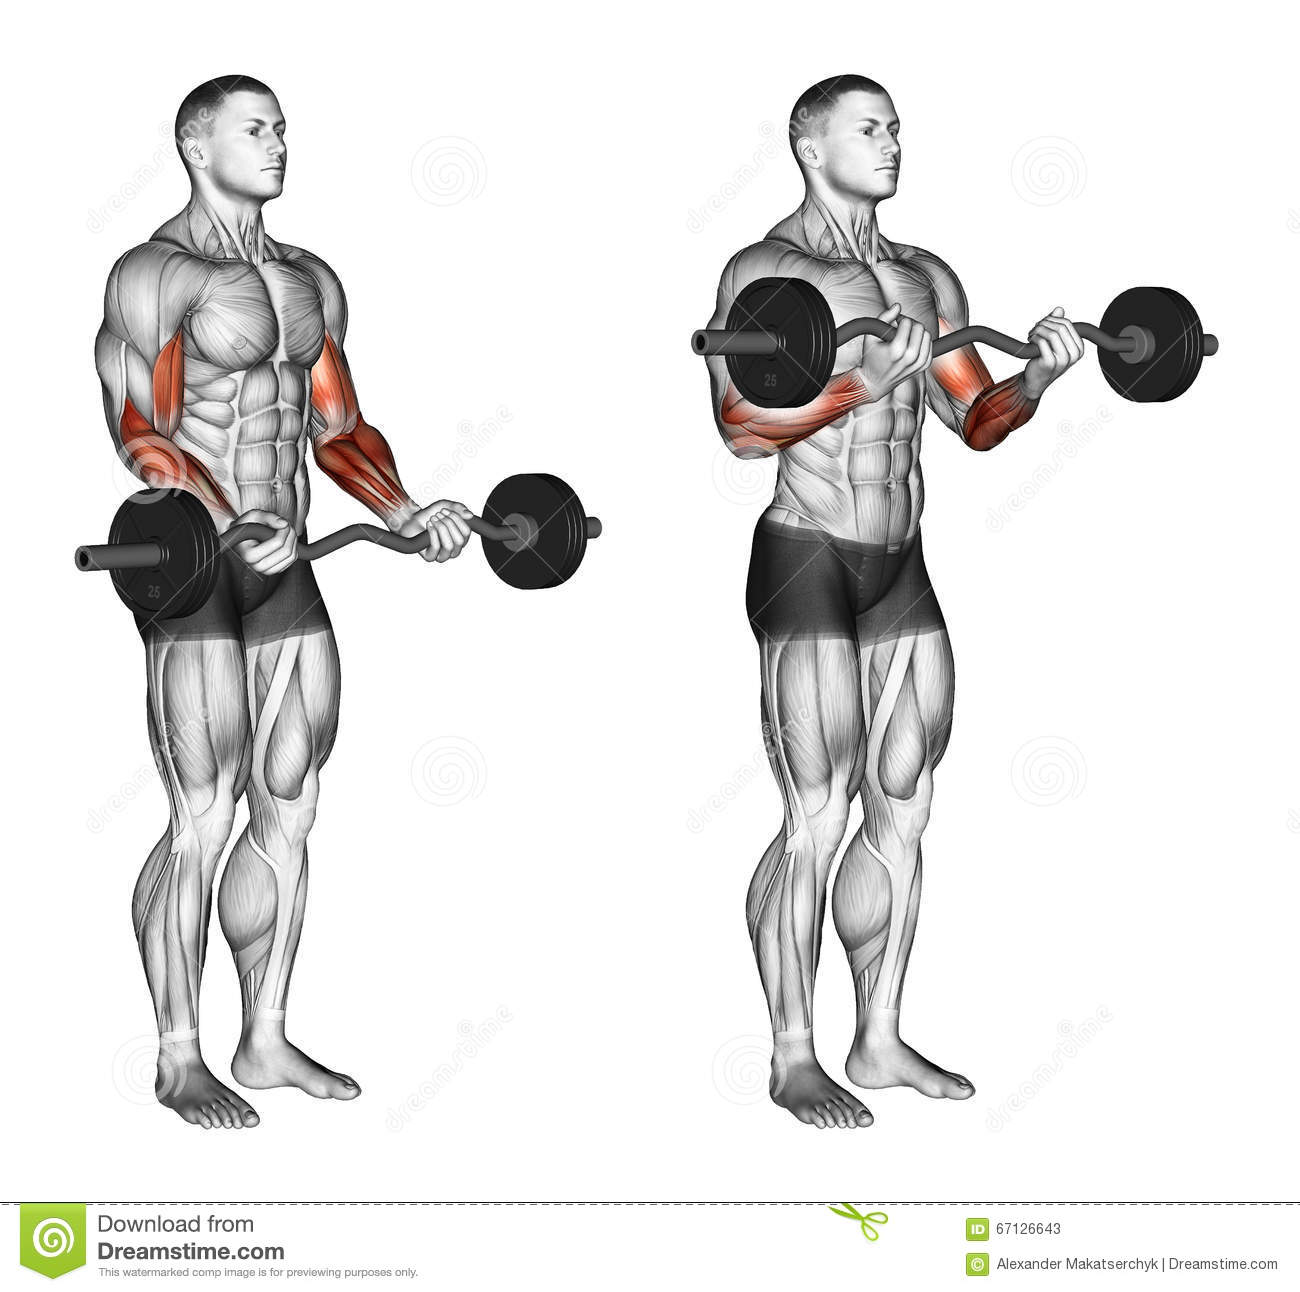 S Exercer Boucles De Barre D Ez Illustration Stock Image